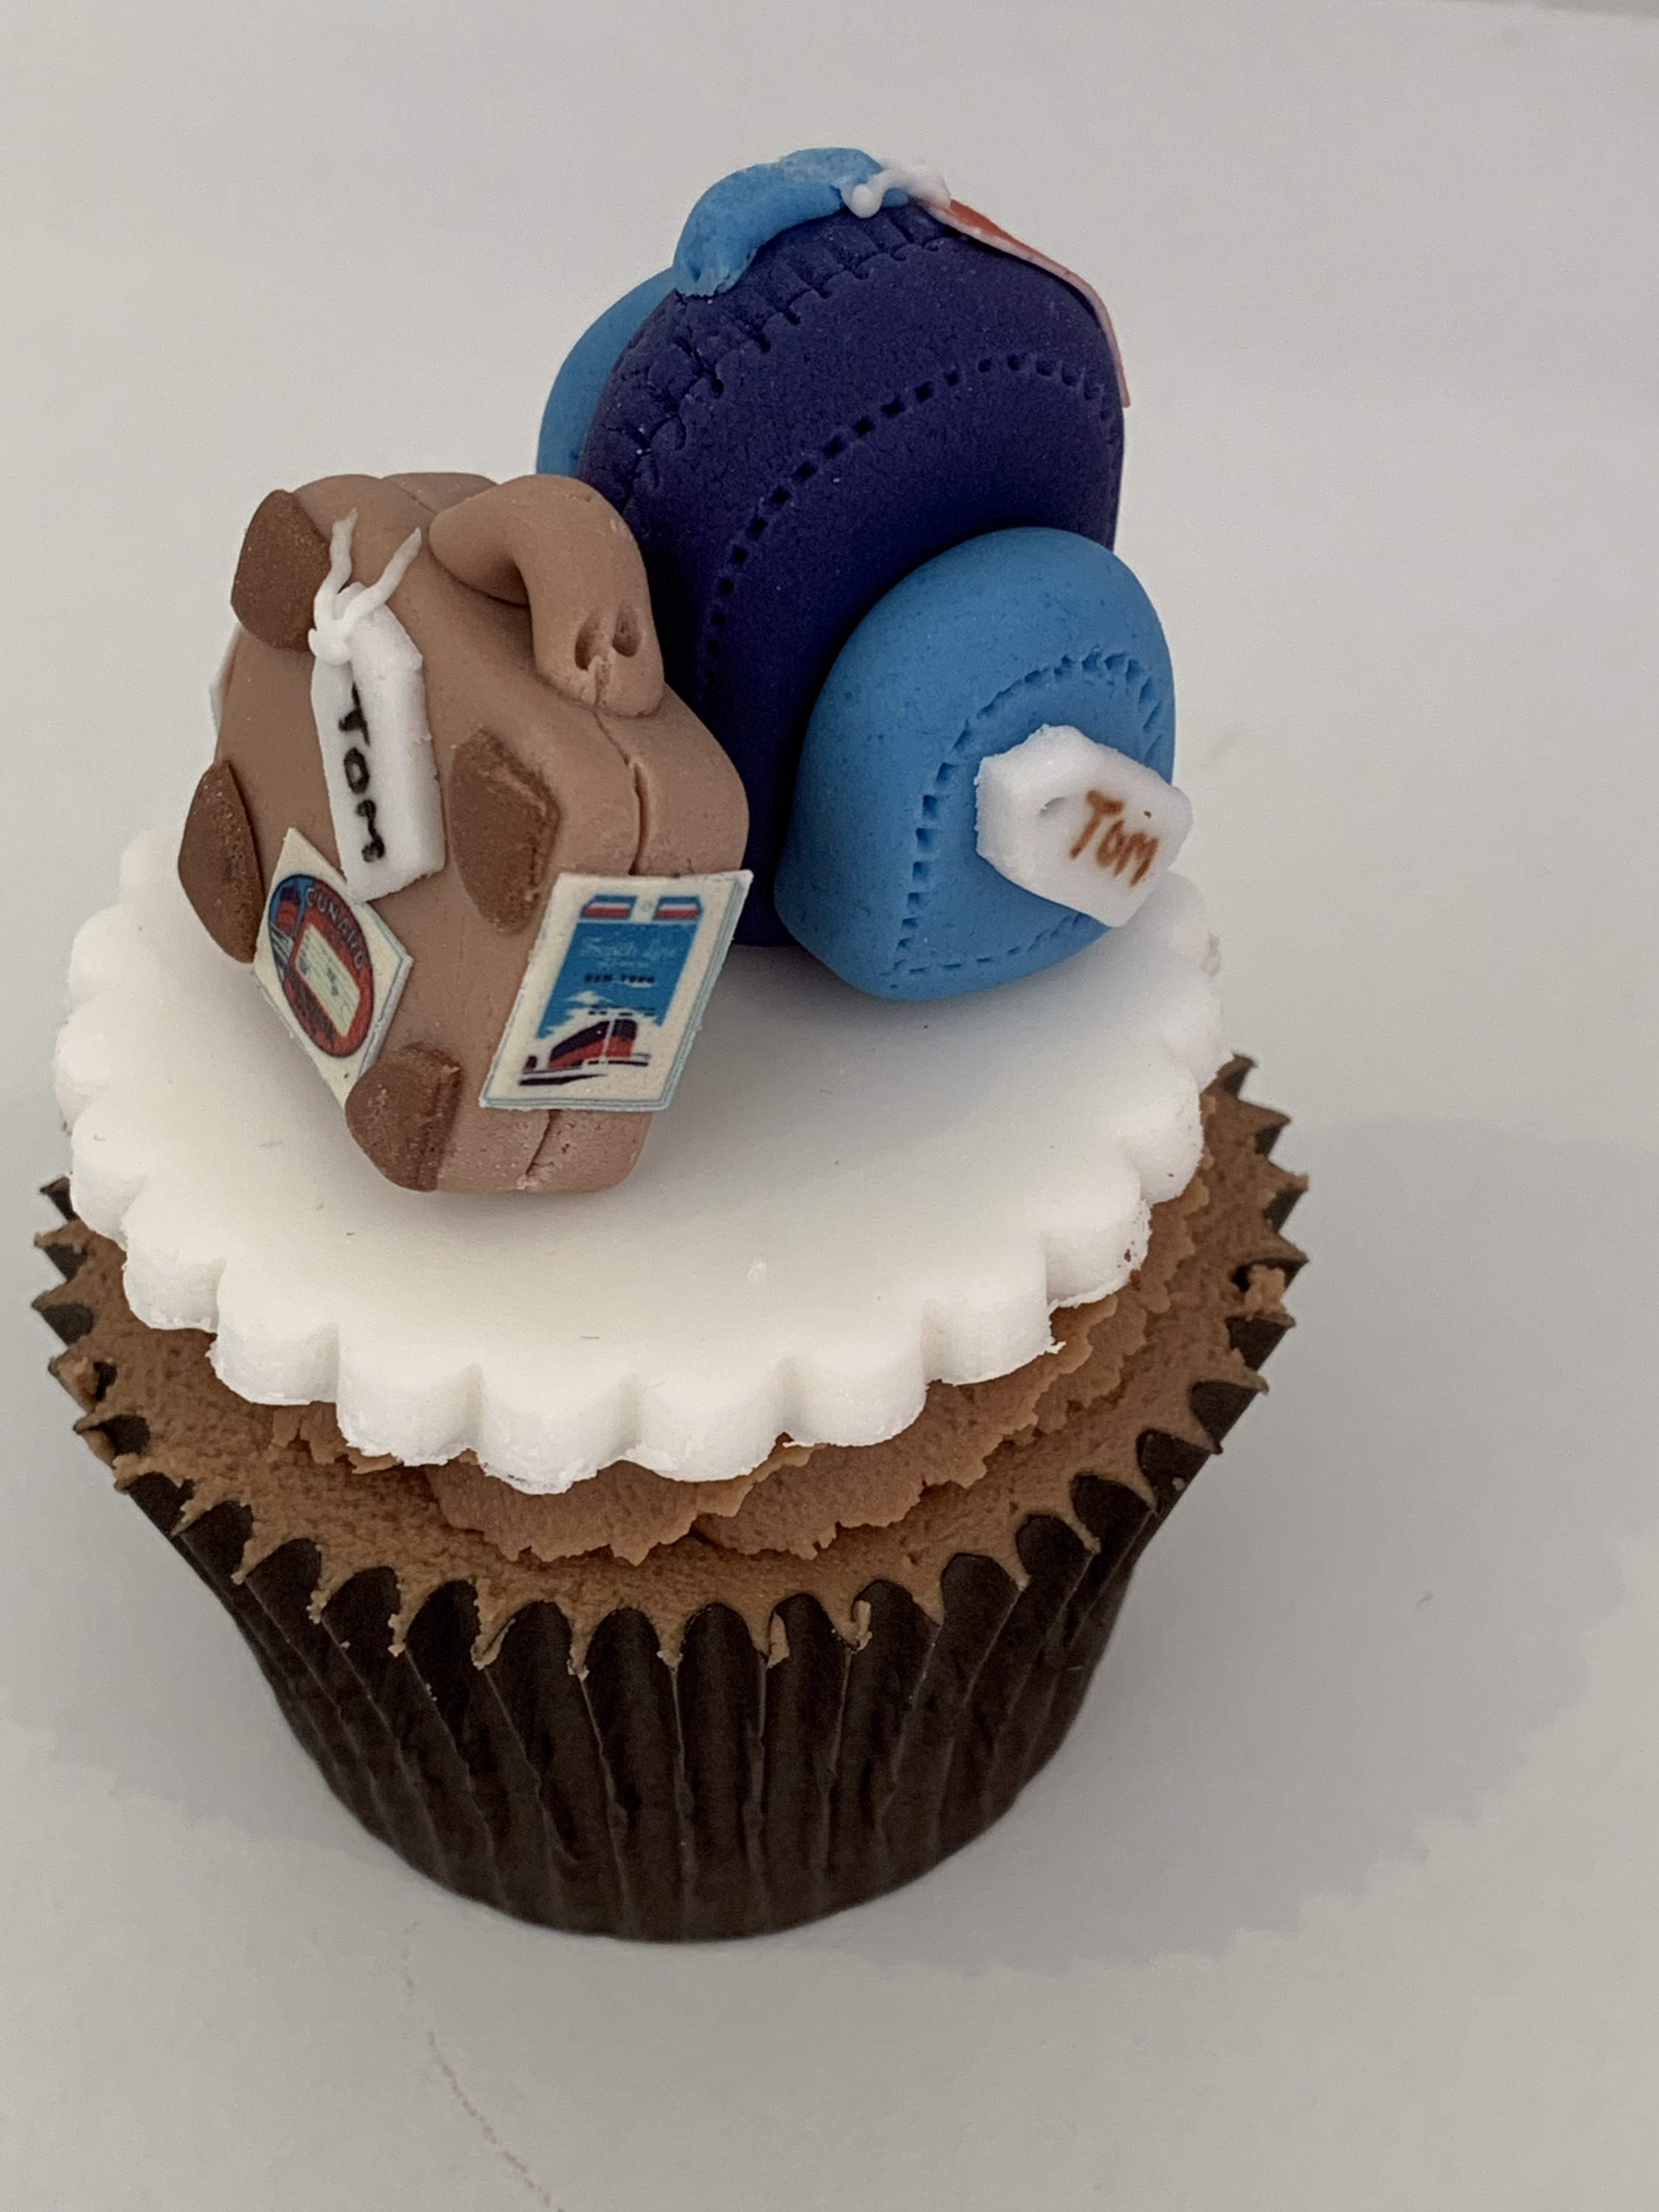 Backpack/case cupcake